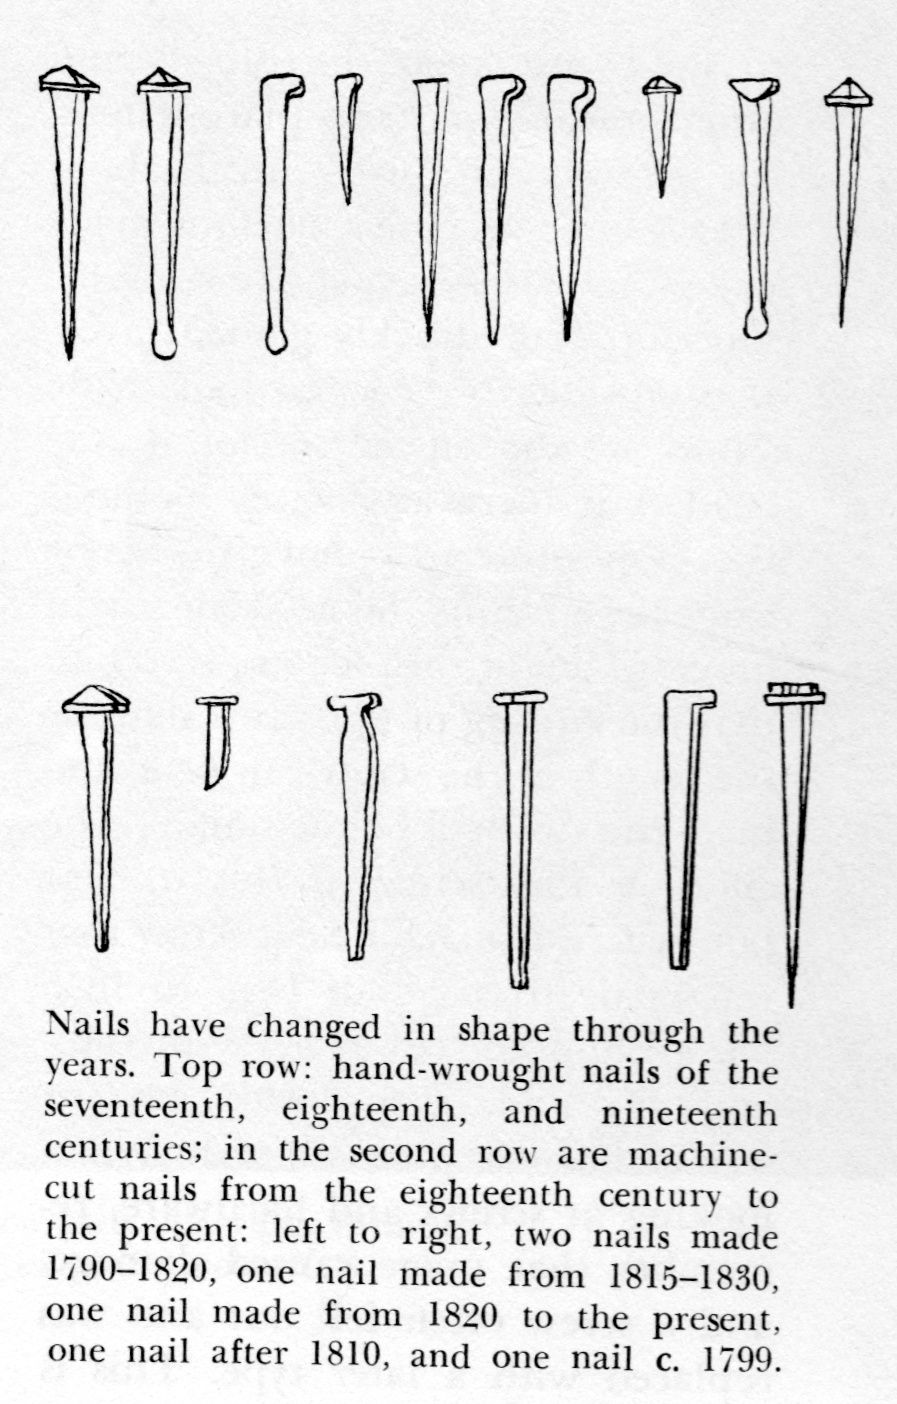 Dating antique furniture nails